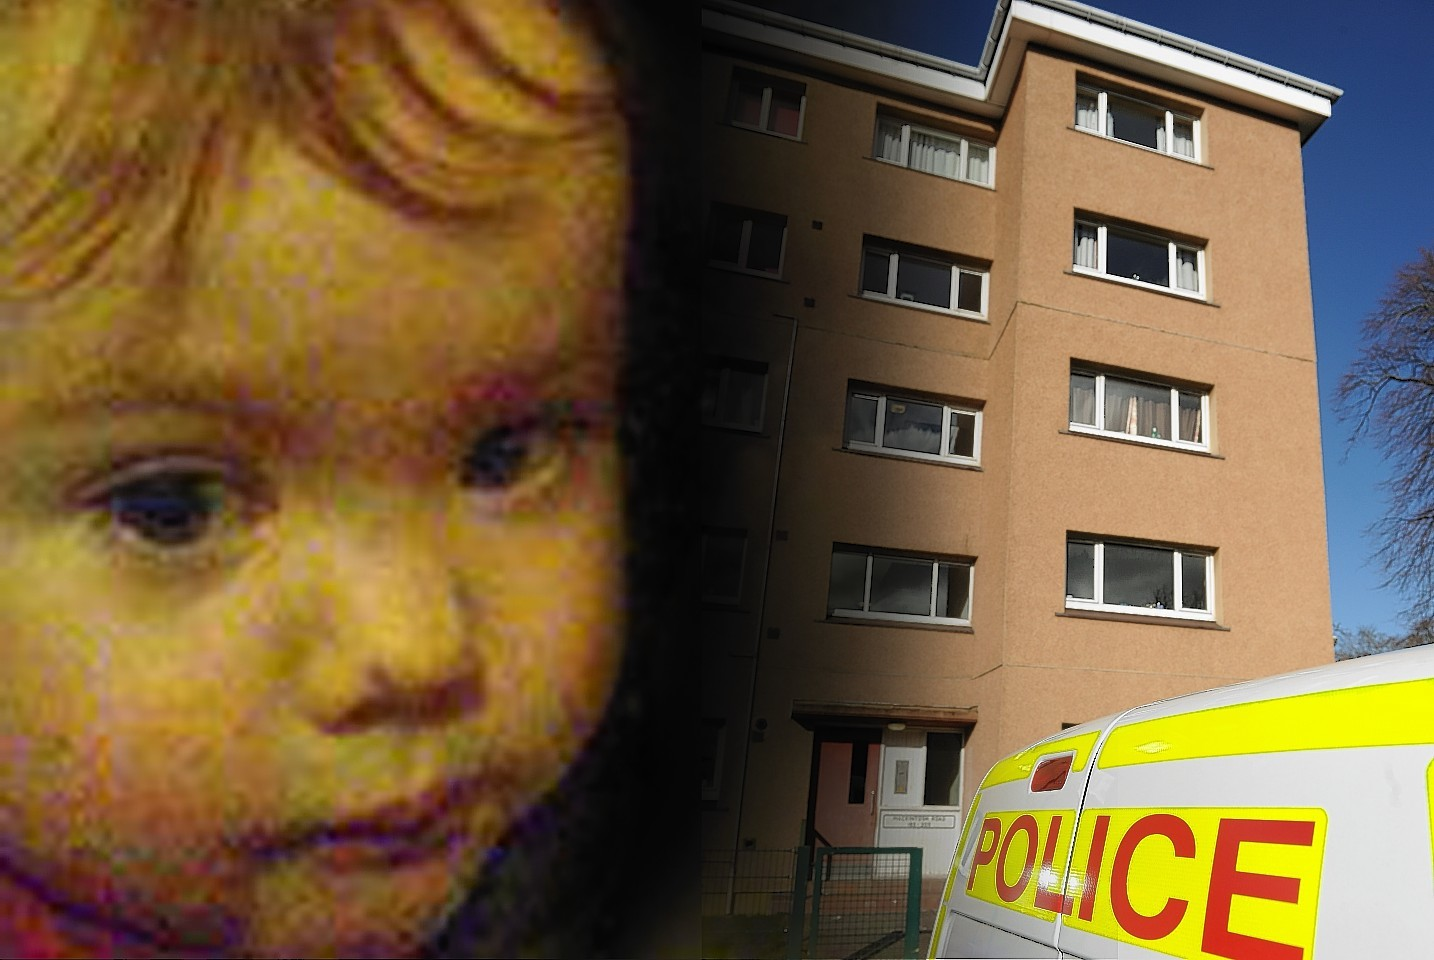 Two-year-old Clyde Campbell died in a flat in the Raigmore area of Inverness